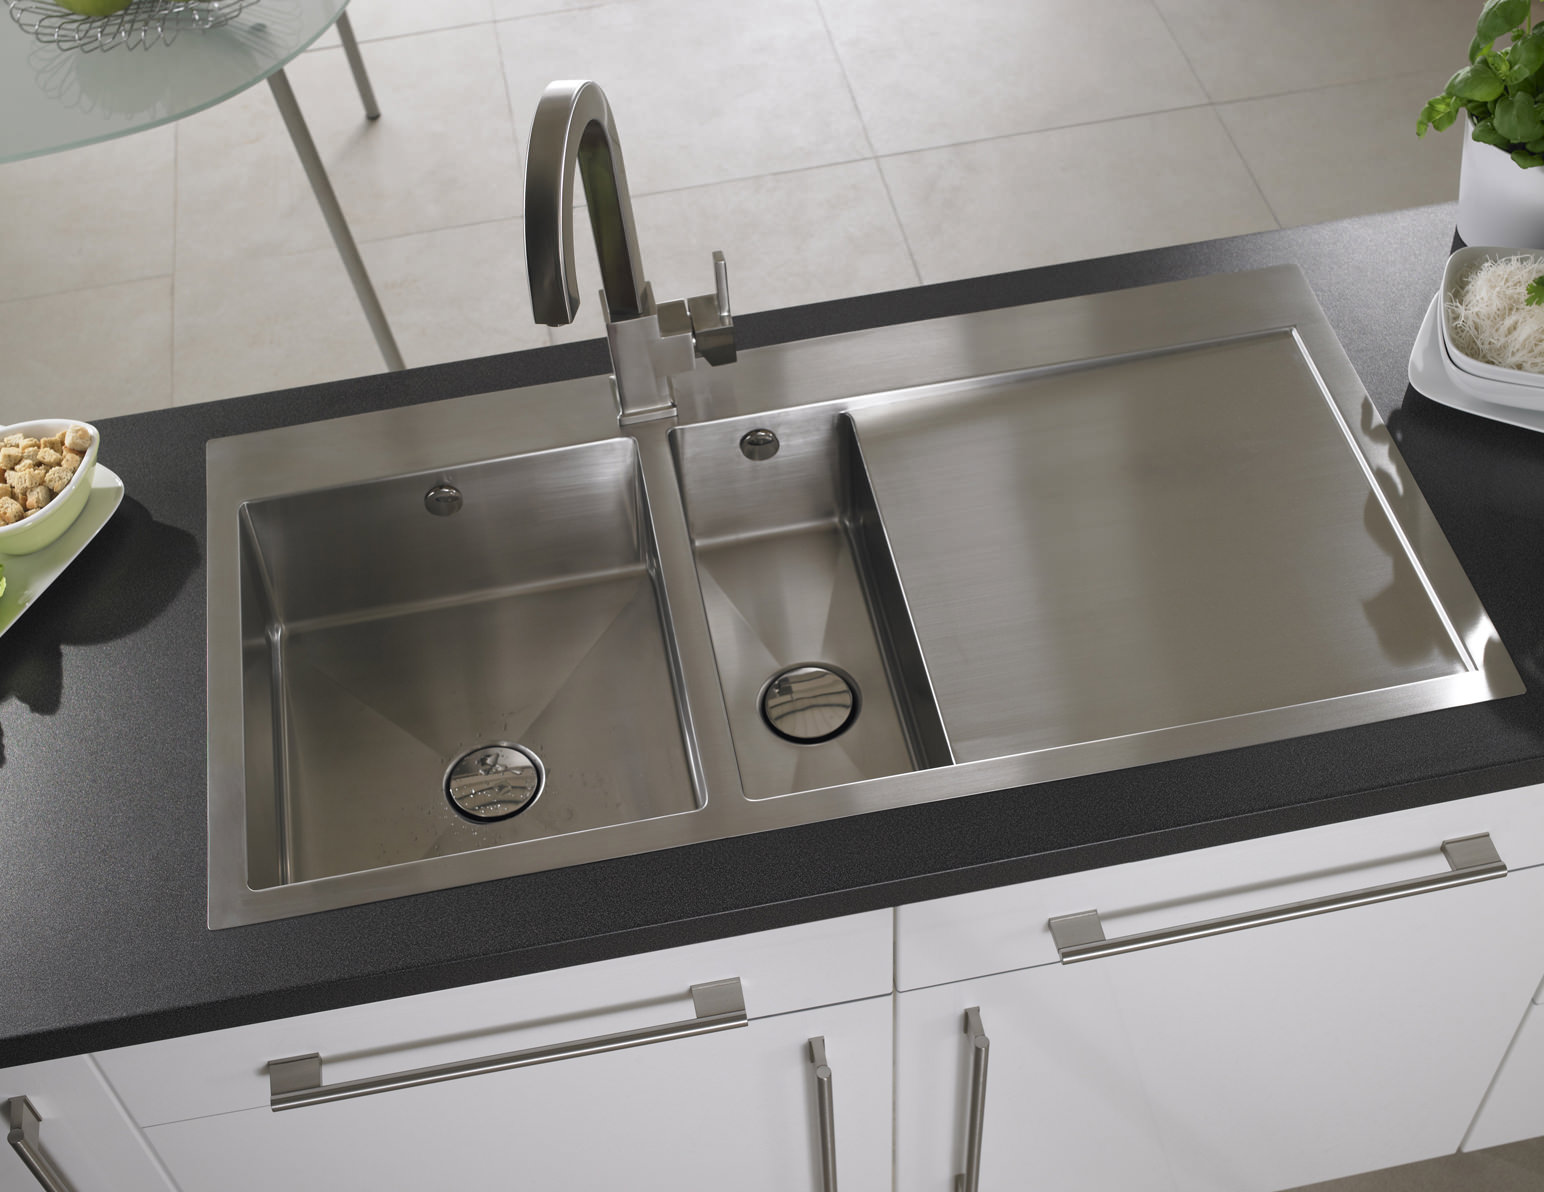 Astracast Vantage Stainless Steel Inset Sink And Accessory - 1.5B